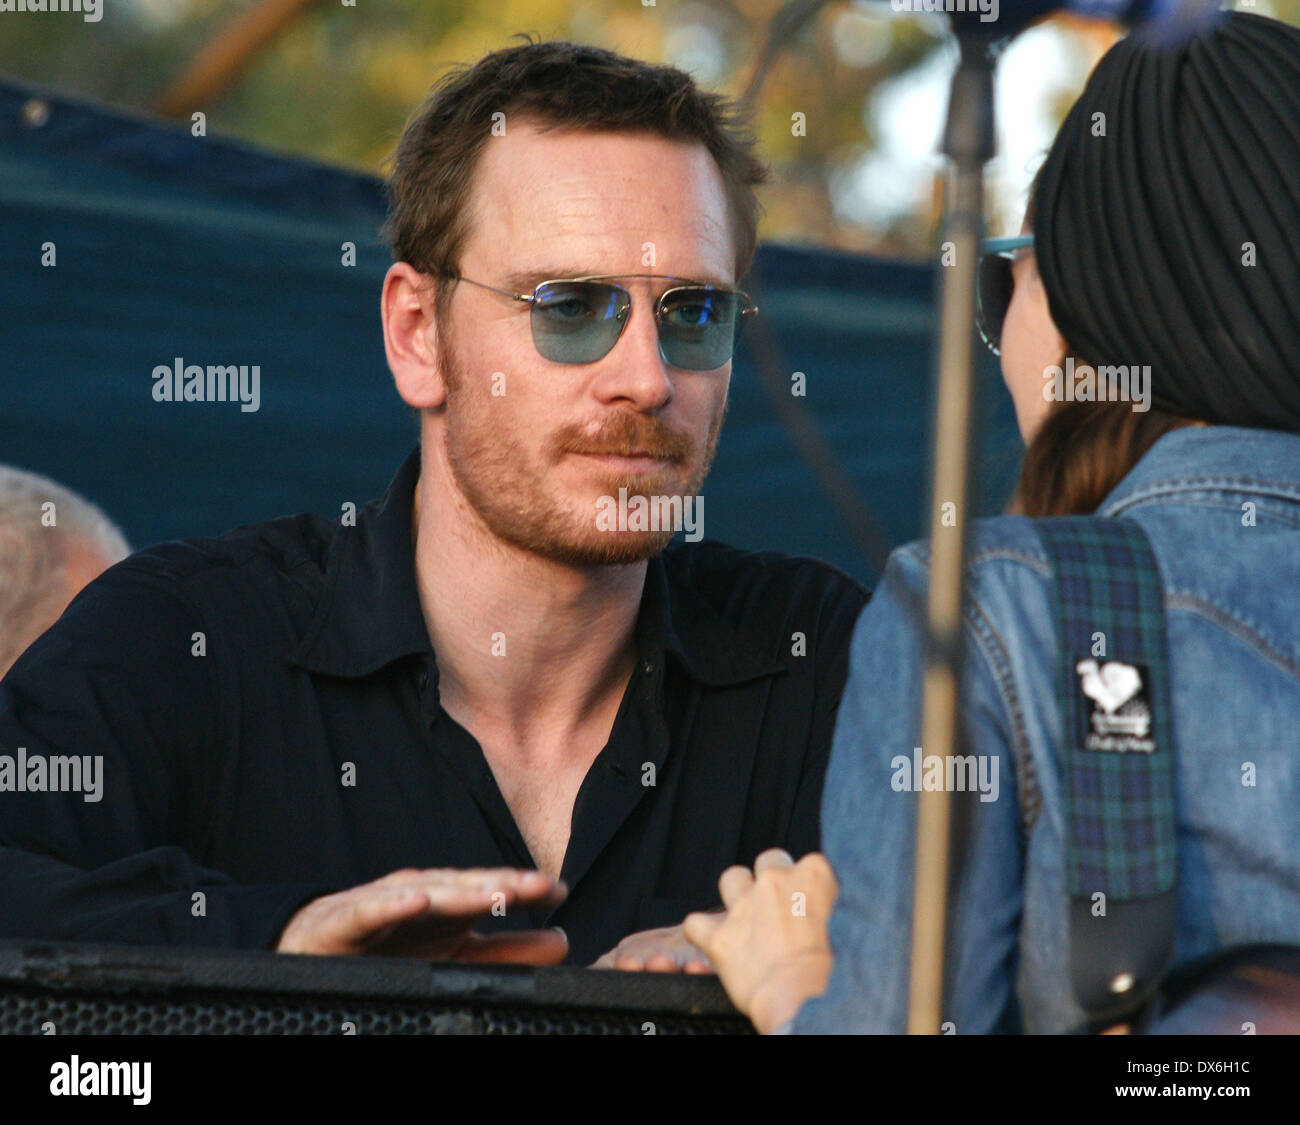 Michael Fassbender and Rooney Mara on the set of 'Untitled Terrence Malick Project' at the Fun Fun Fun Fest Austin, Texas - 02.11.12 Featuring: Michael Fassbender and Rooney Mara Where: United States When: 02 Nov 2012 - Stock Image